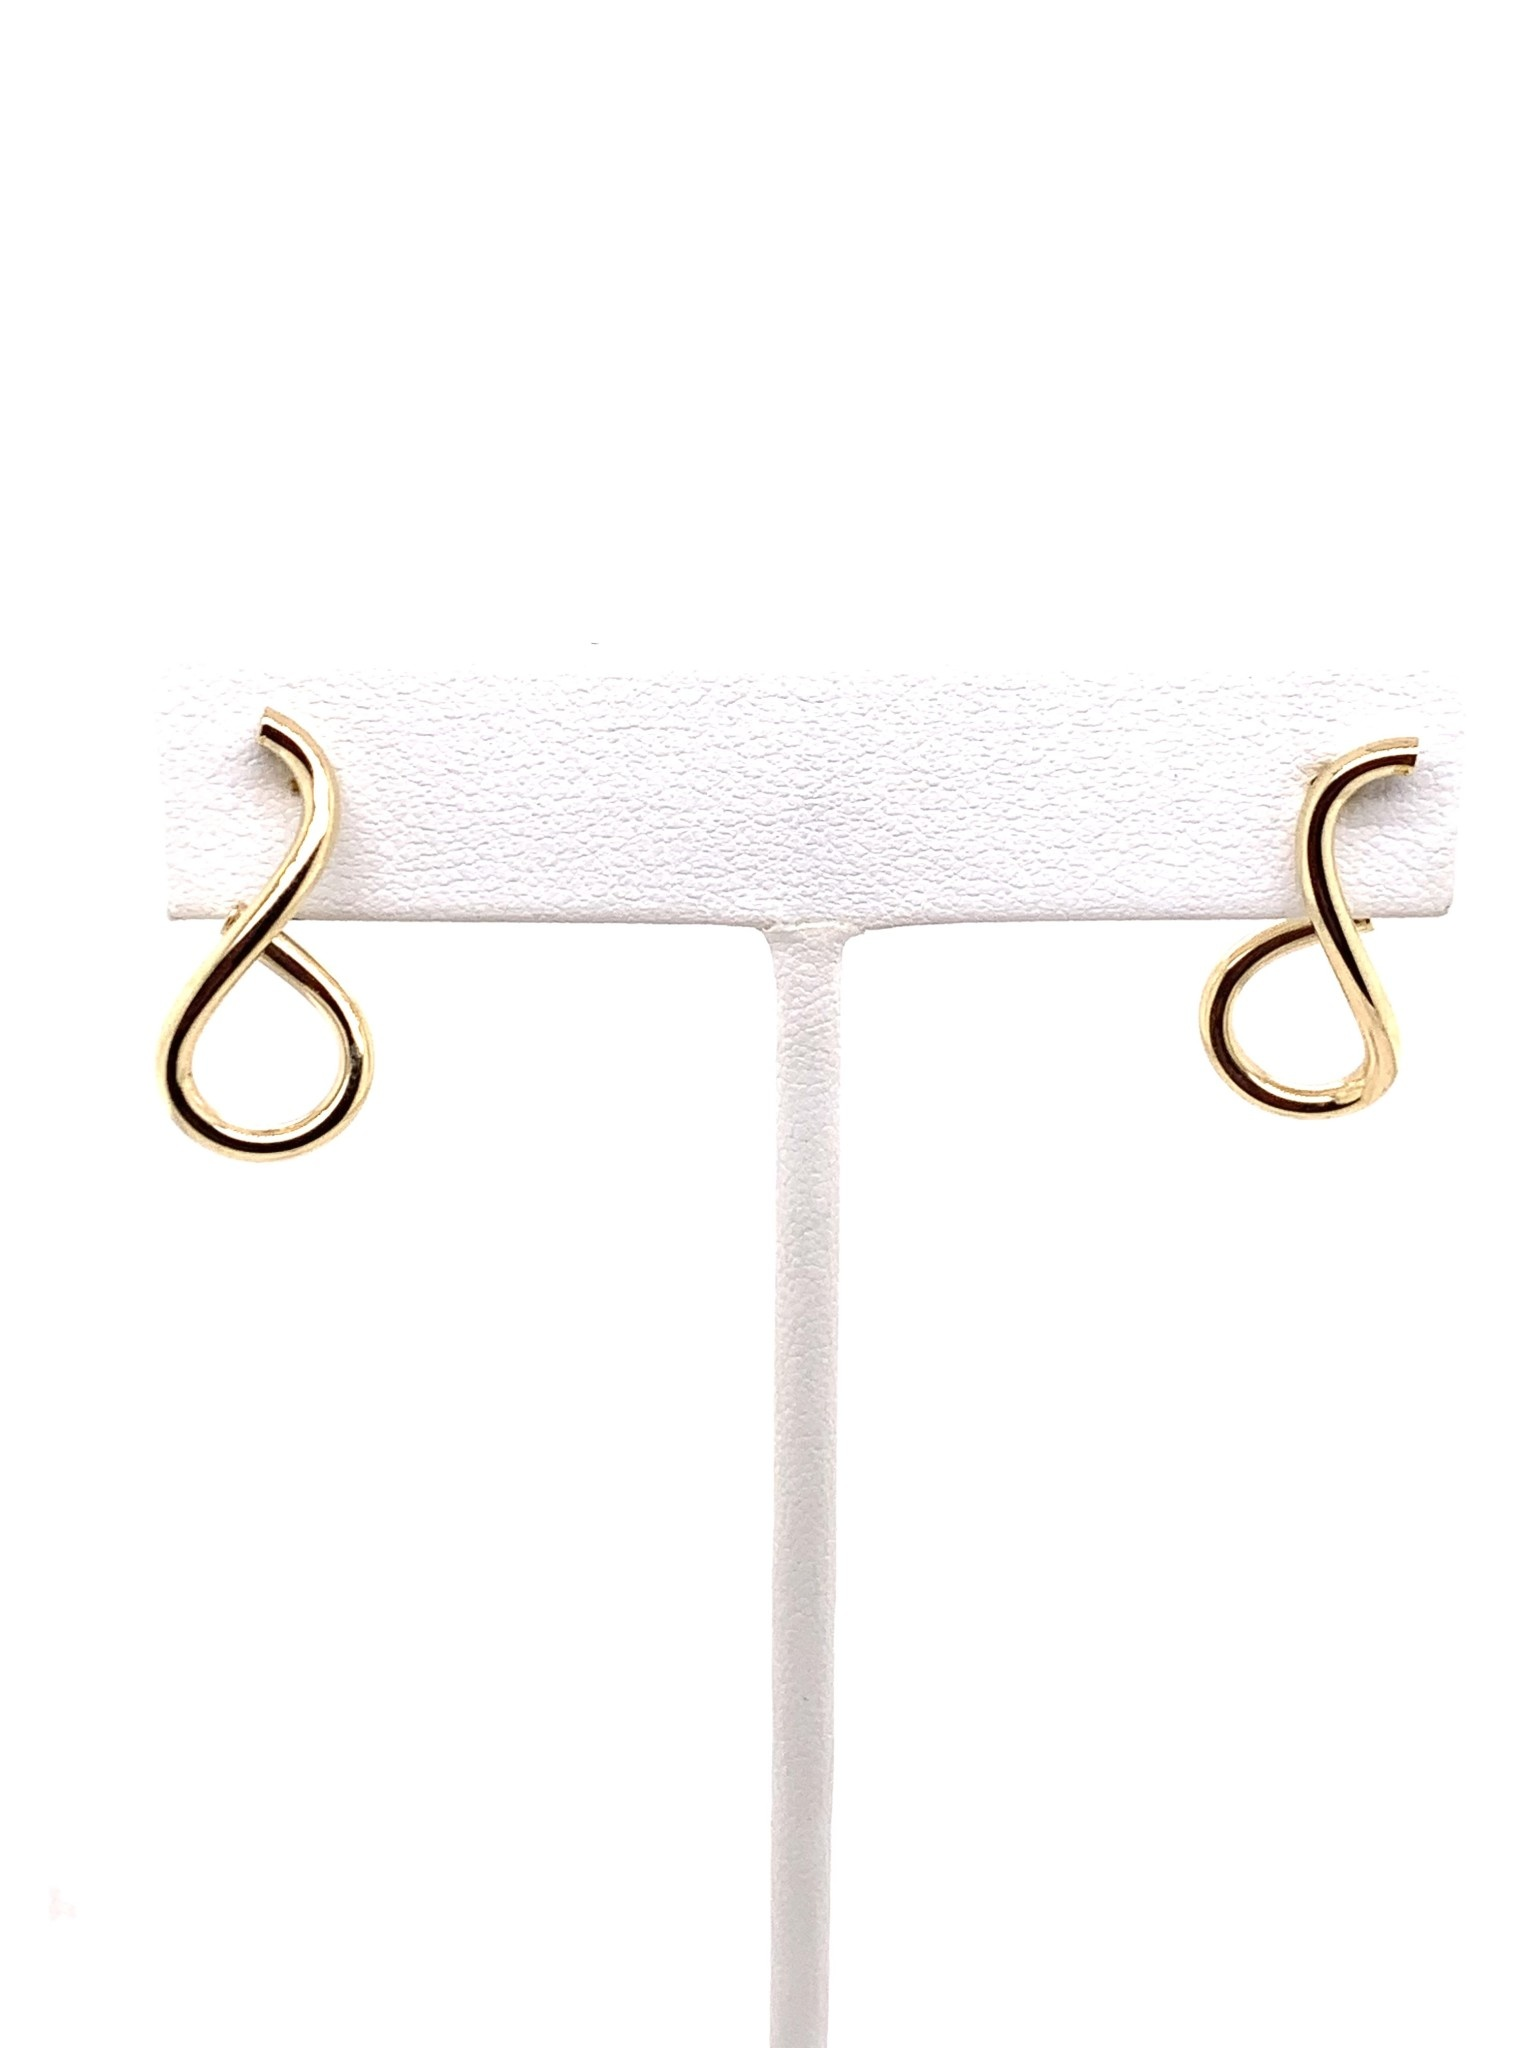 14K yellow gold swirl earrings